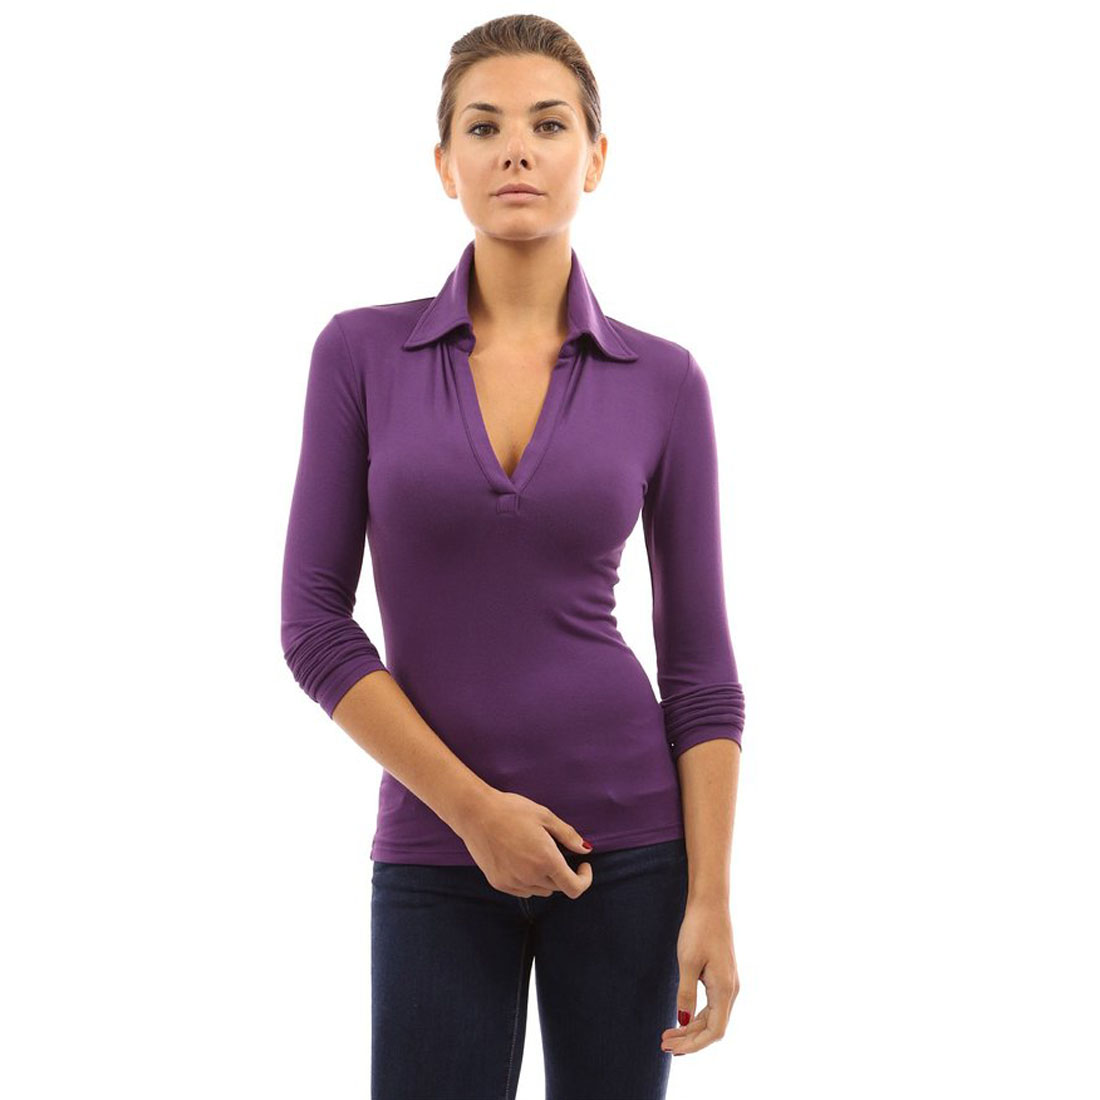 Women's Tees and V-Neck Tees from inerloadsr5s.gq Anchor your wardrobe with quality Women's tees from inerloadsr5s.gq From comfortable, casual styles in vibrant colors to pretty tops with special details, we've got the perfect Women's tees for every day of the week.